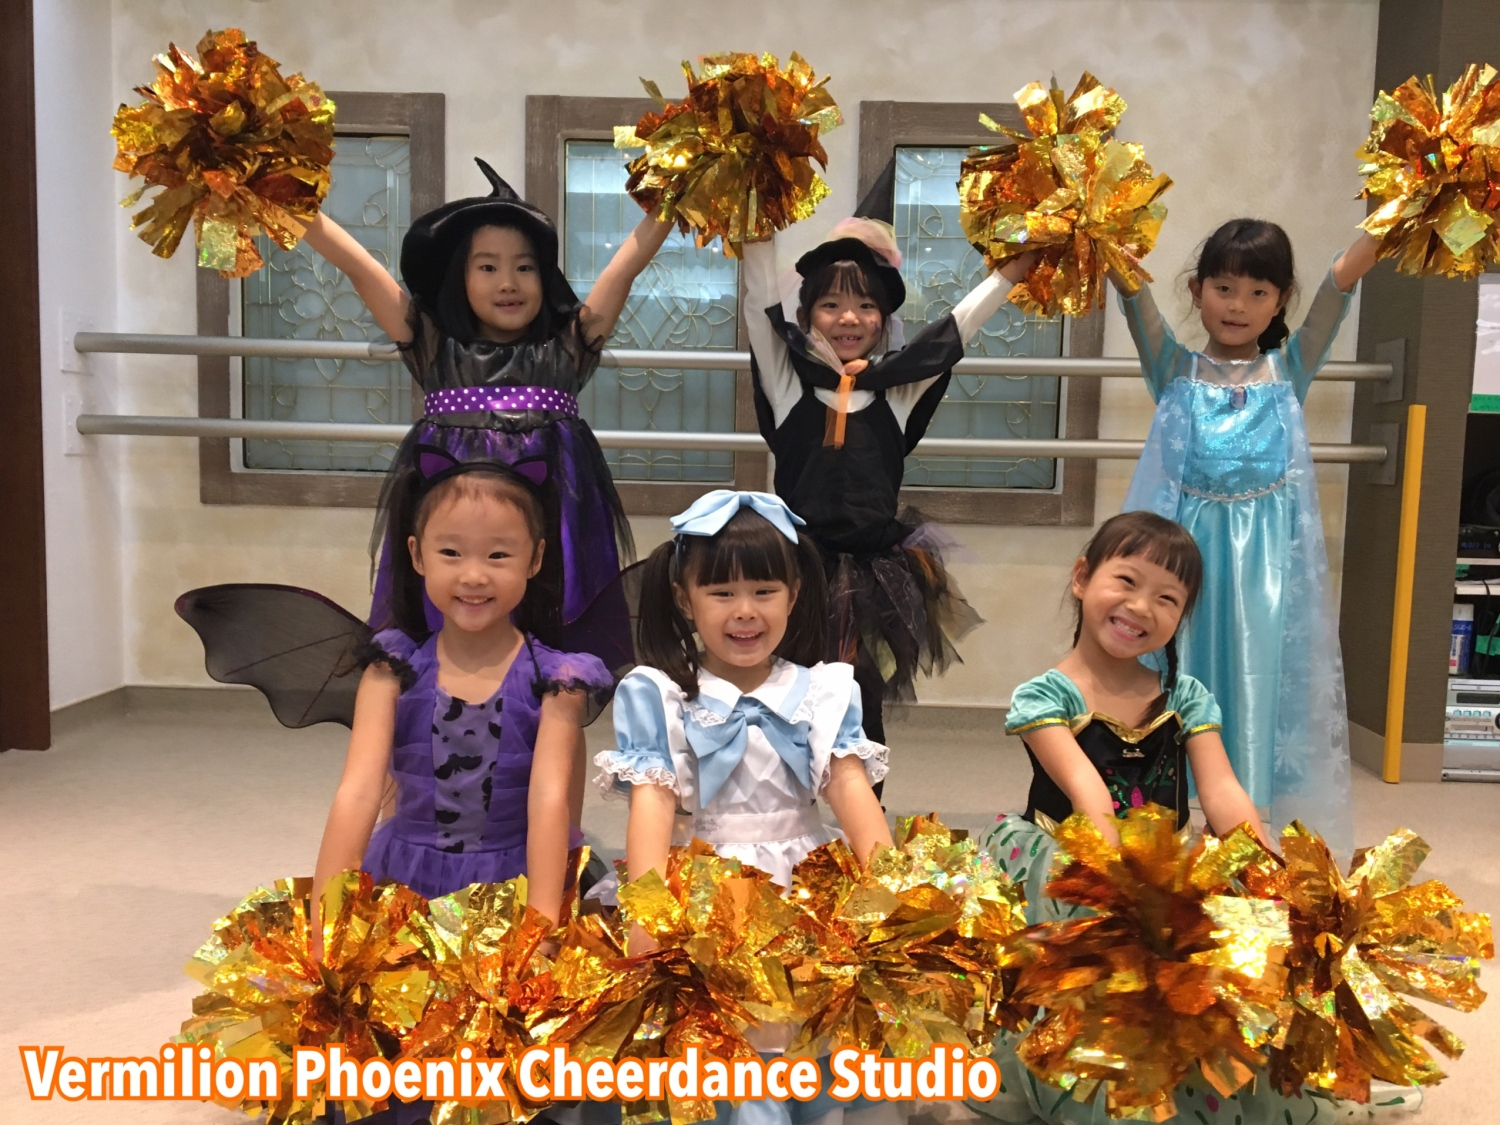 Vermilion Phoenix Cheerdance Studio 할로윈 레슨